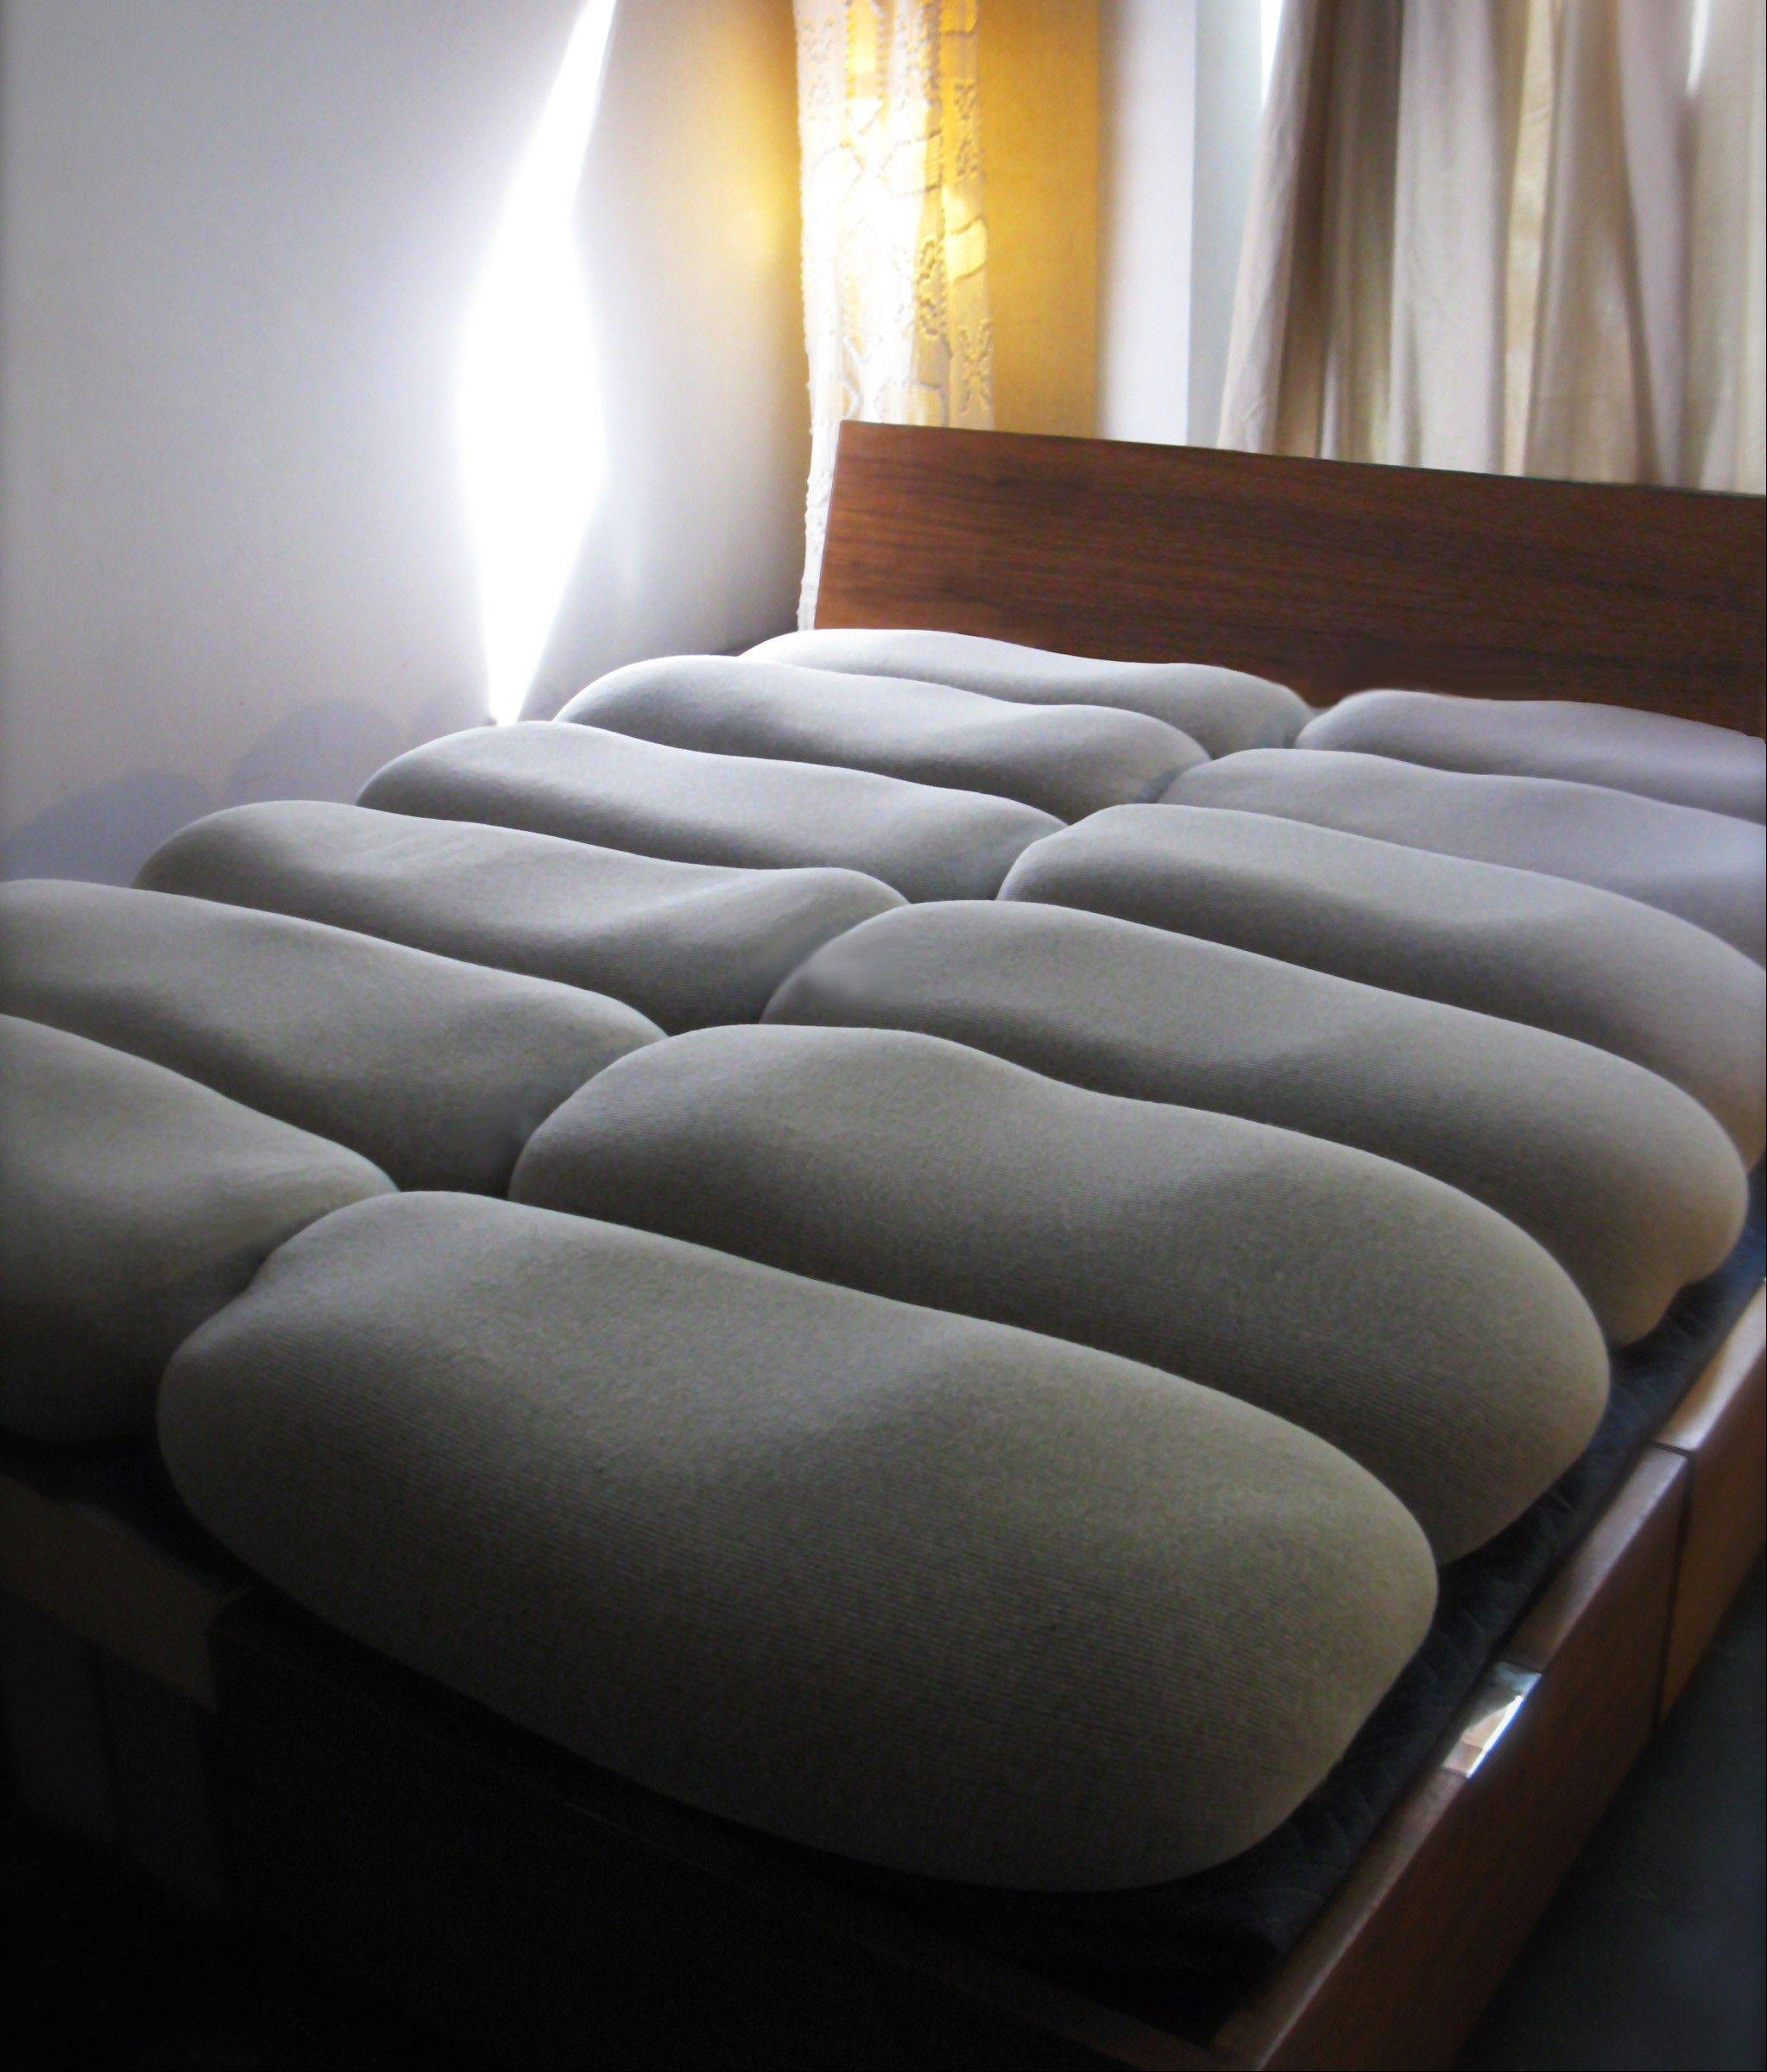 Former interior designer Lynn Cimino's creation of the Twist mattress -- components include cotton covers and buckwheat hulls that you self-assemble by filling the covers with the hulls and twisting and tying (openyoureyesbedding.com). Fully customizable, the mattresses are similar to Japanese futons.